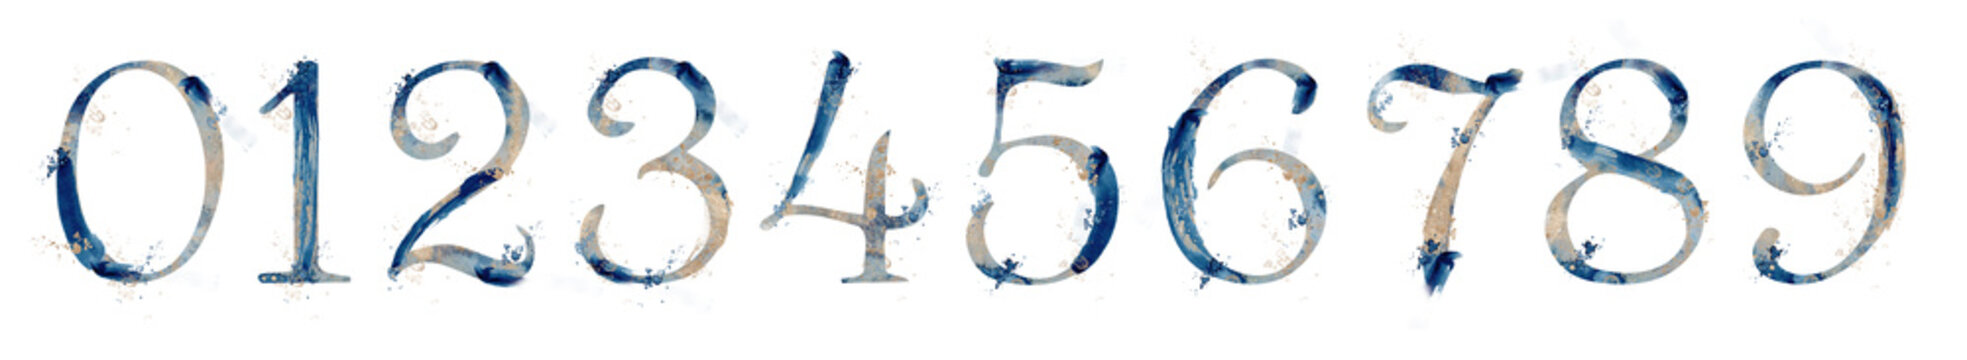 Watercolor abstract marine numbers set with gold strokes from 0 to 9 hand drawn